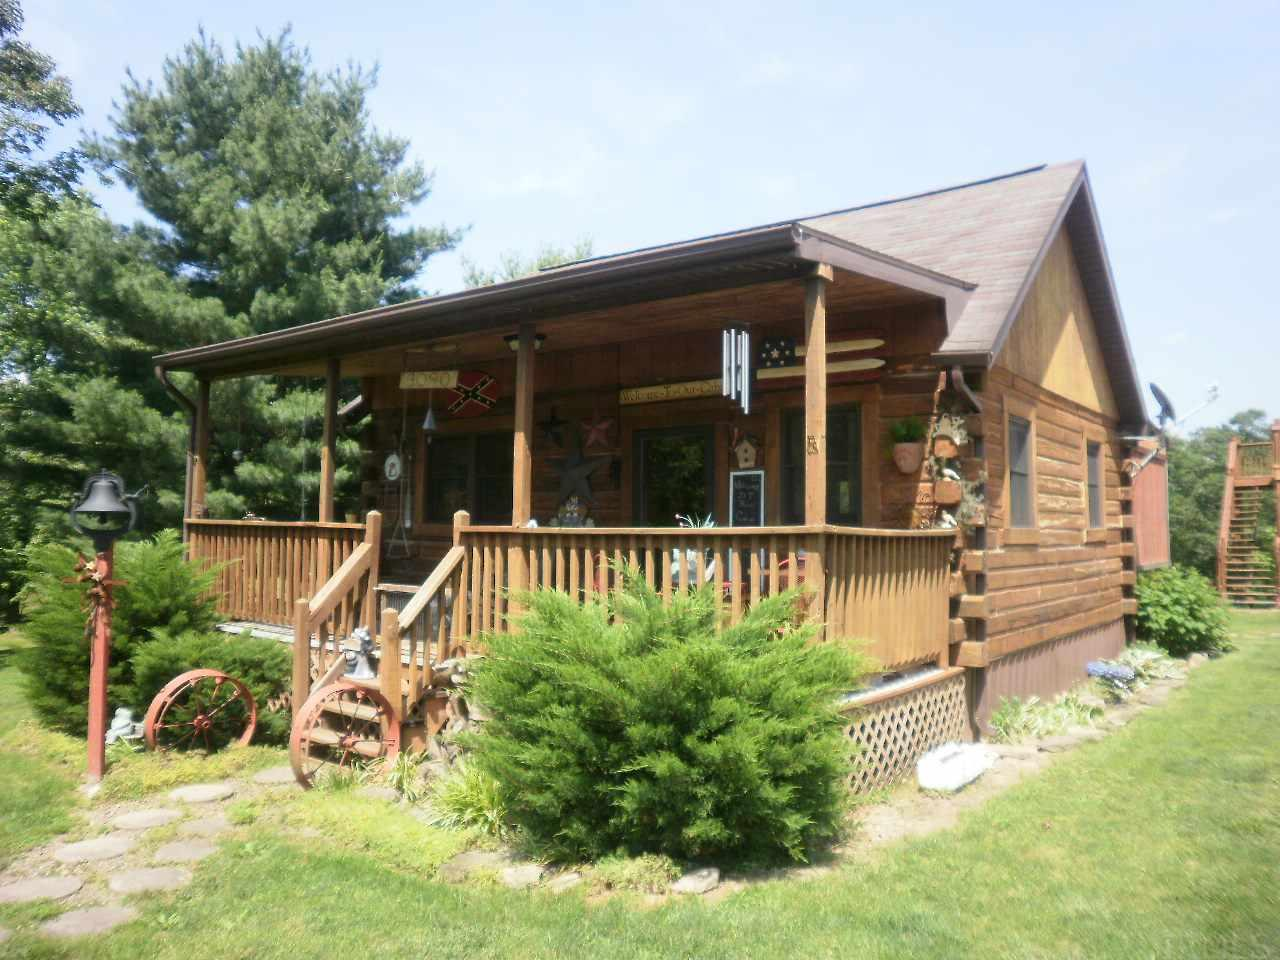 3090 Shamrock, Birdseye, IN 47513